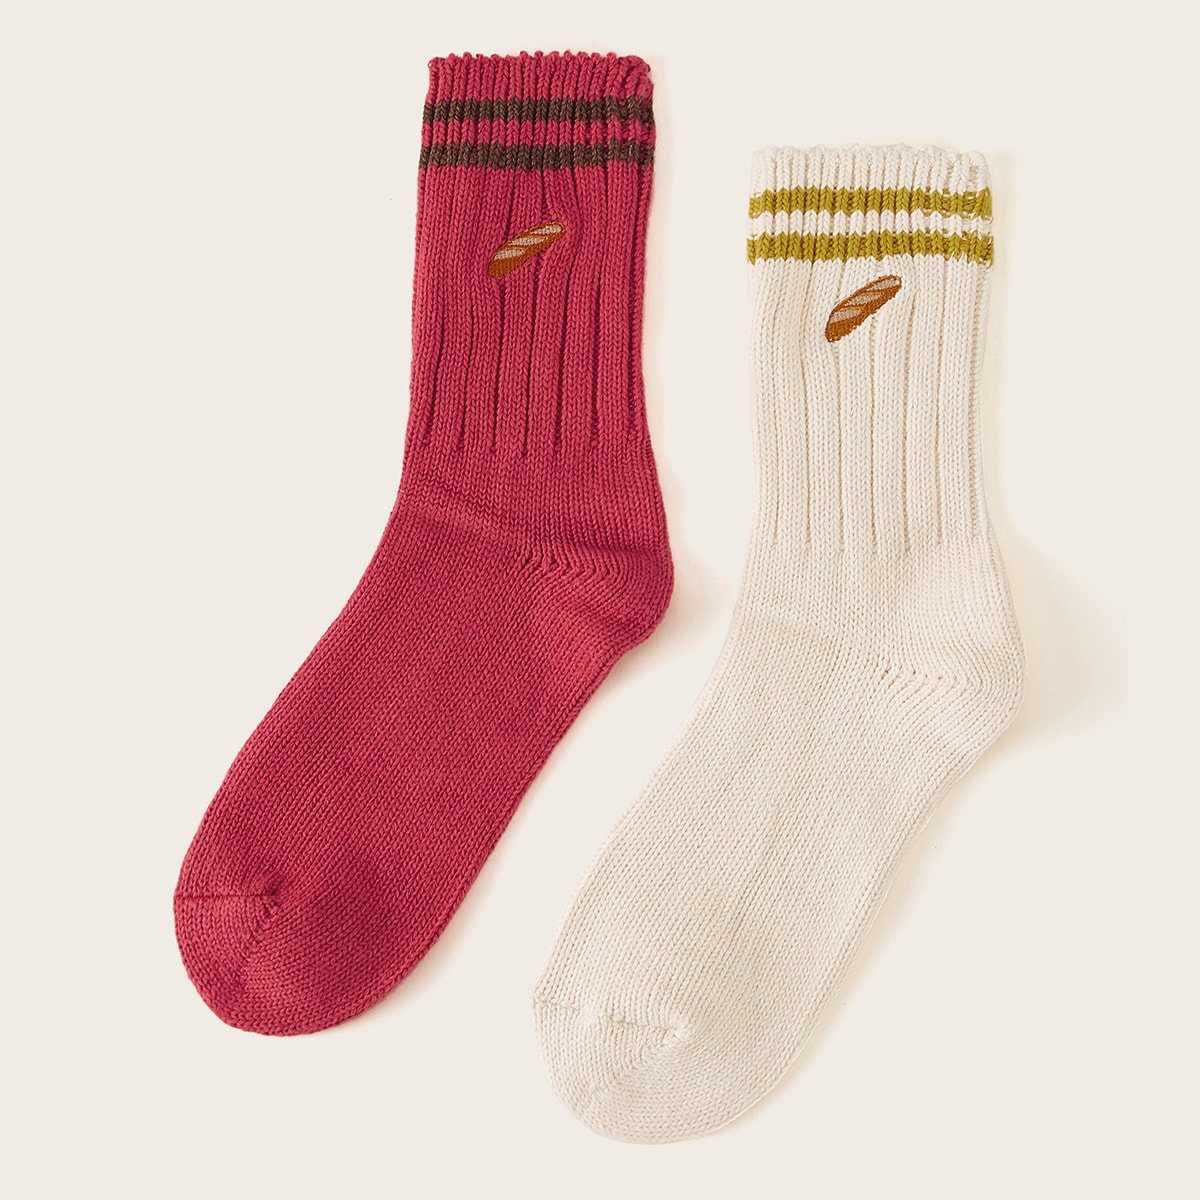 Colorblock Socks 2pairs in Multicolor by ROMWE on GOOFASH